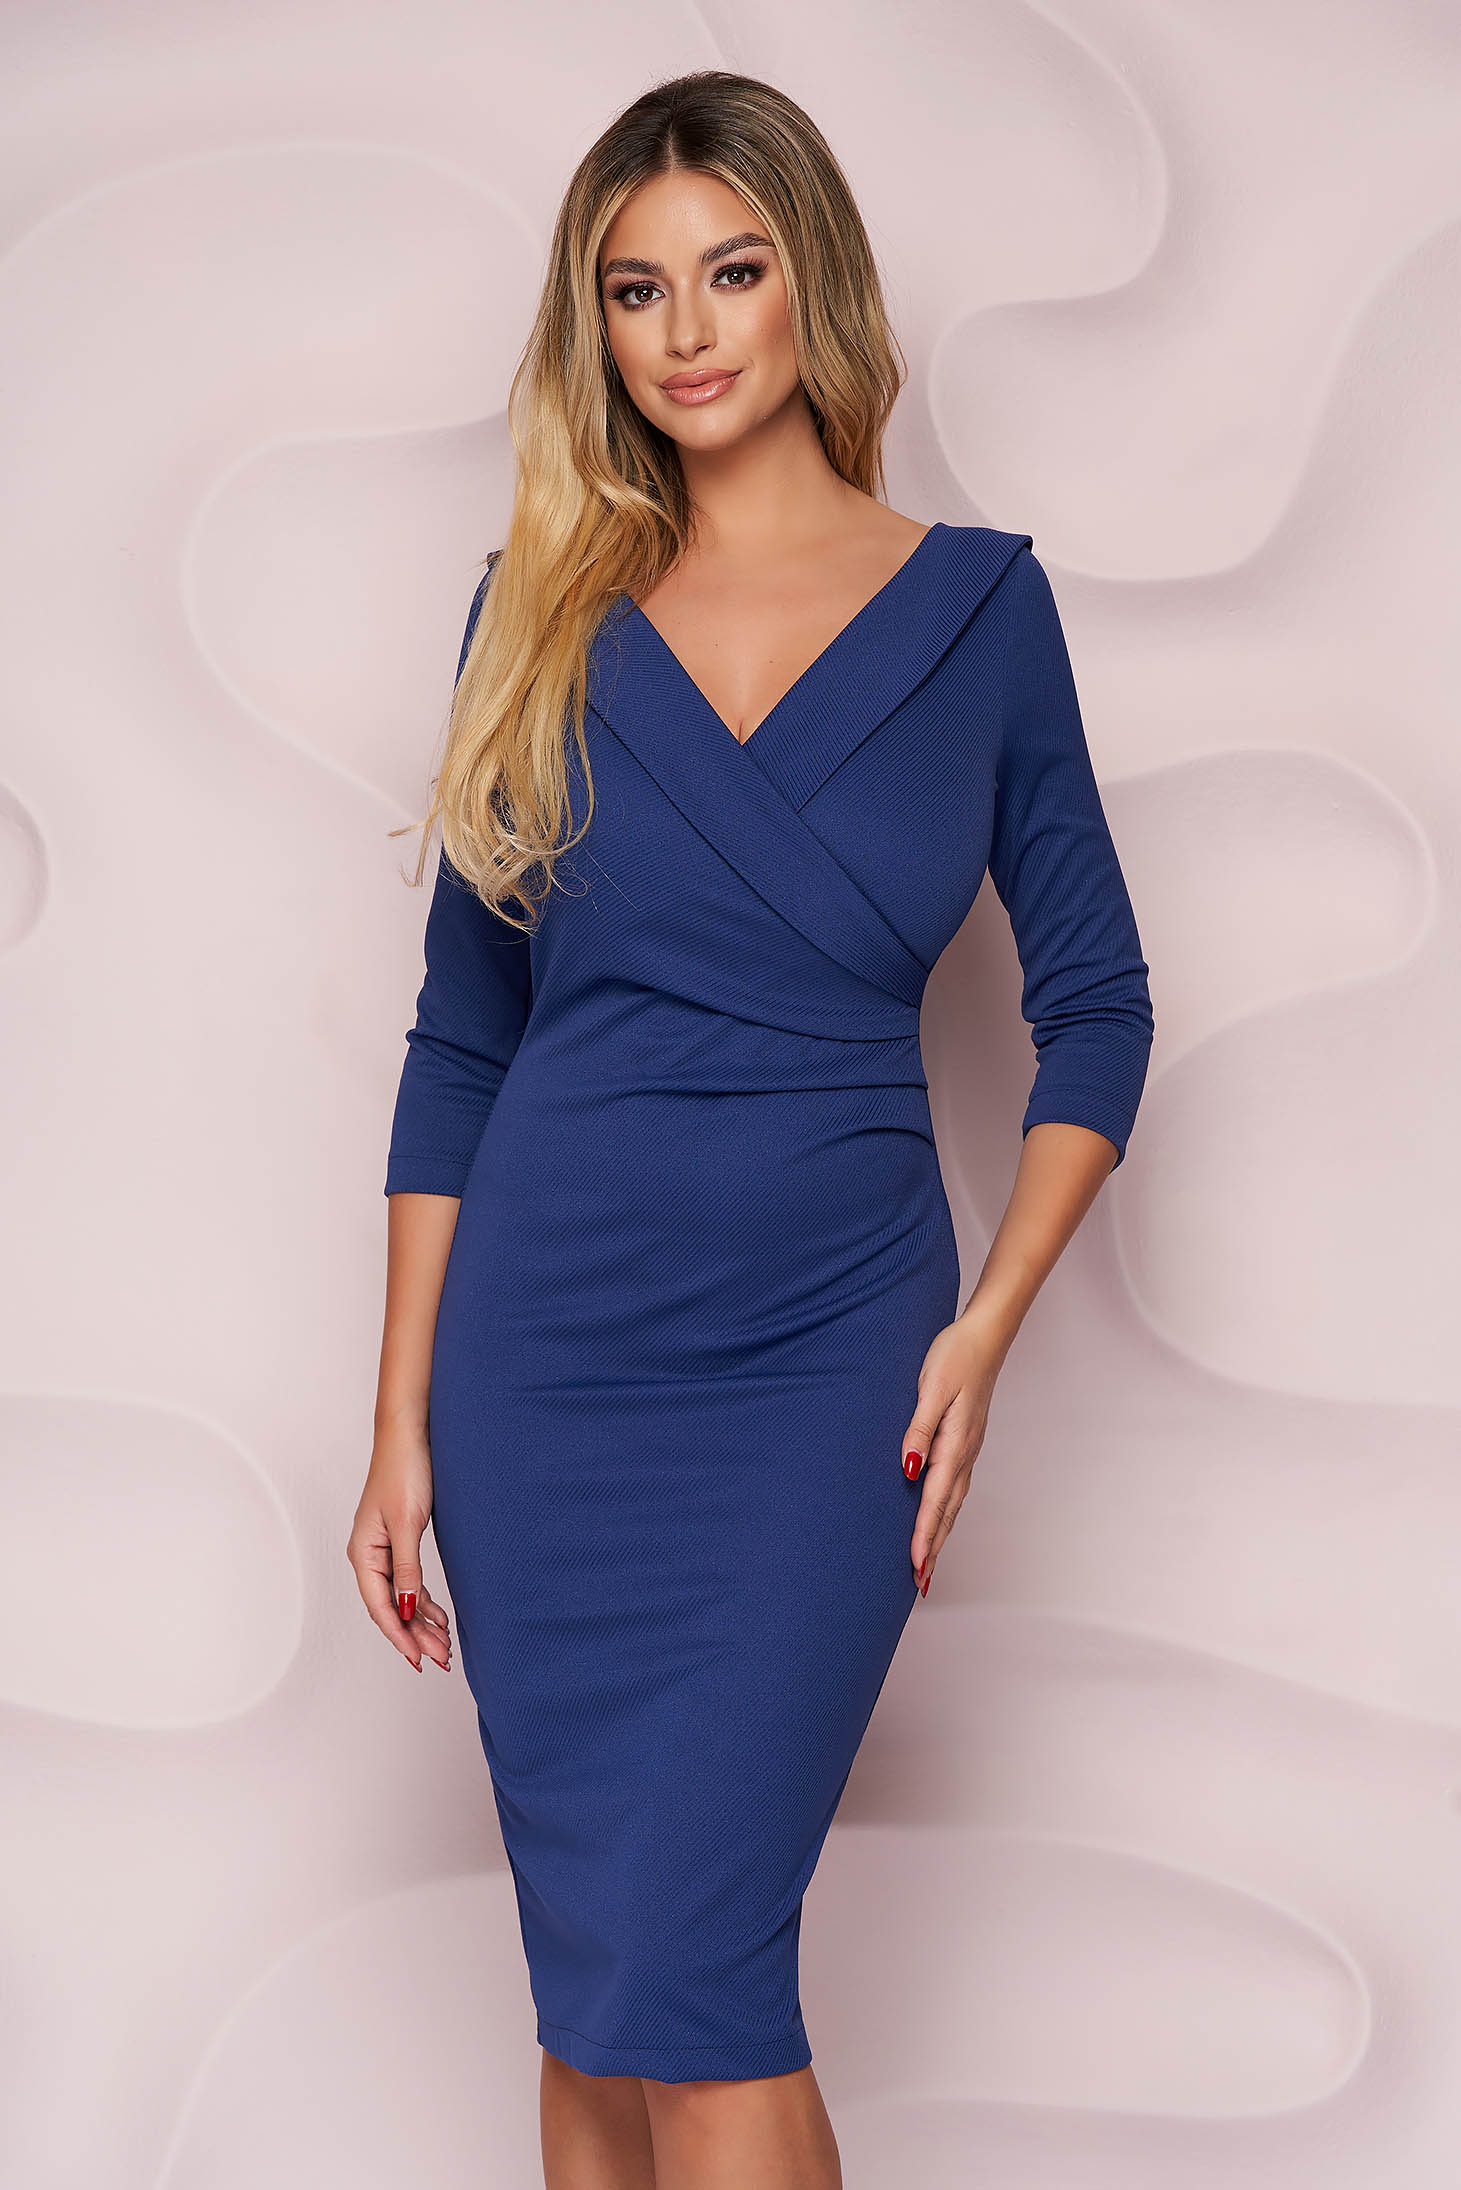 StarShinerS blue dress office midi pencil from elastic fabric wrap over front